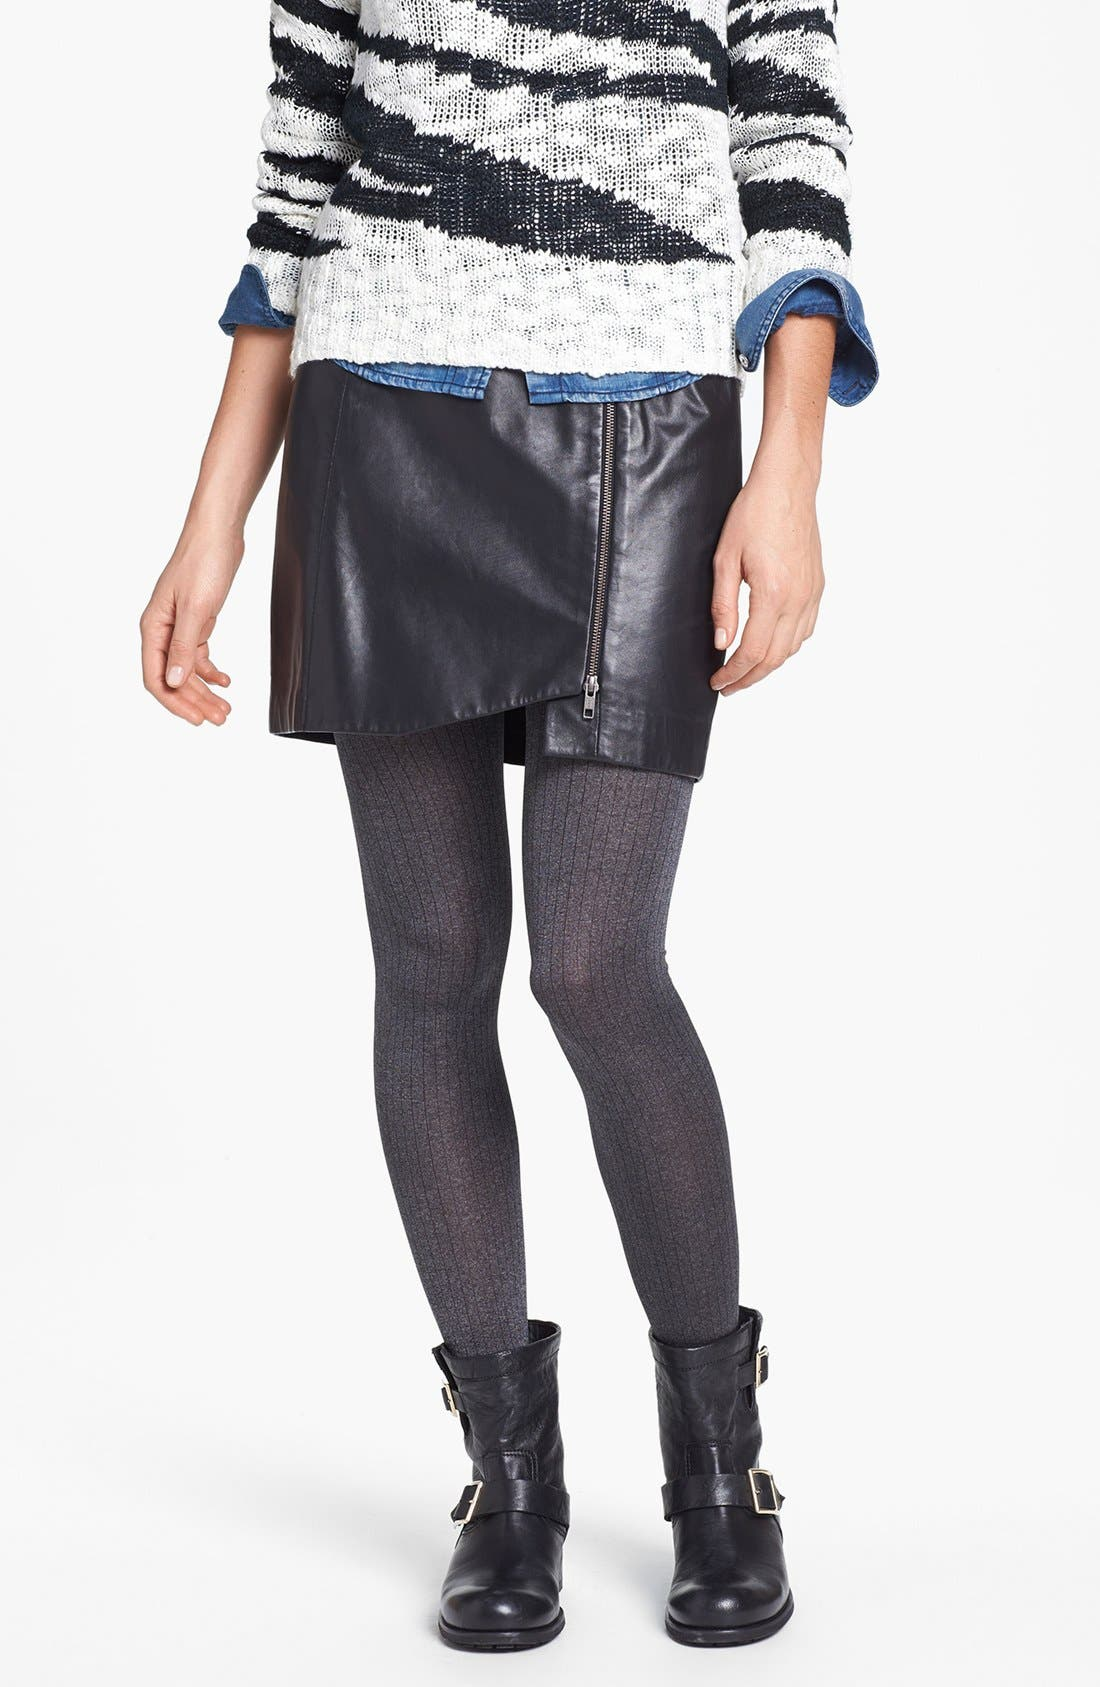 Alternate Image 1 Selected - Nordstrom 'Autumn Rib' Tights